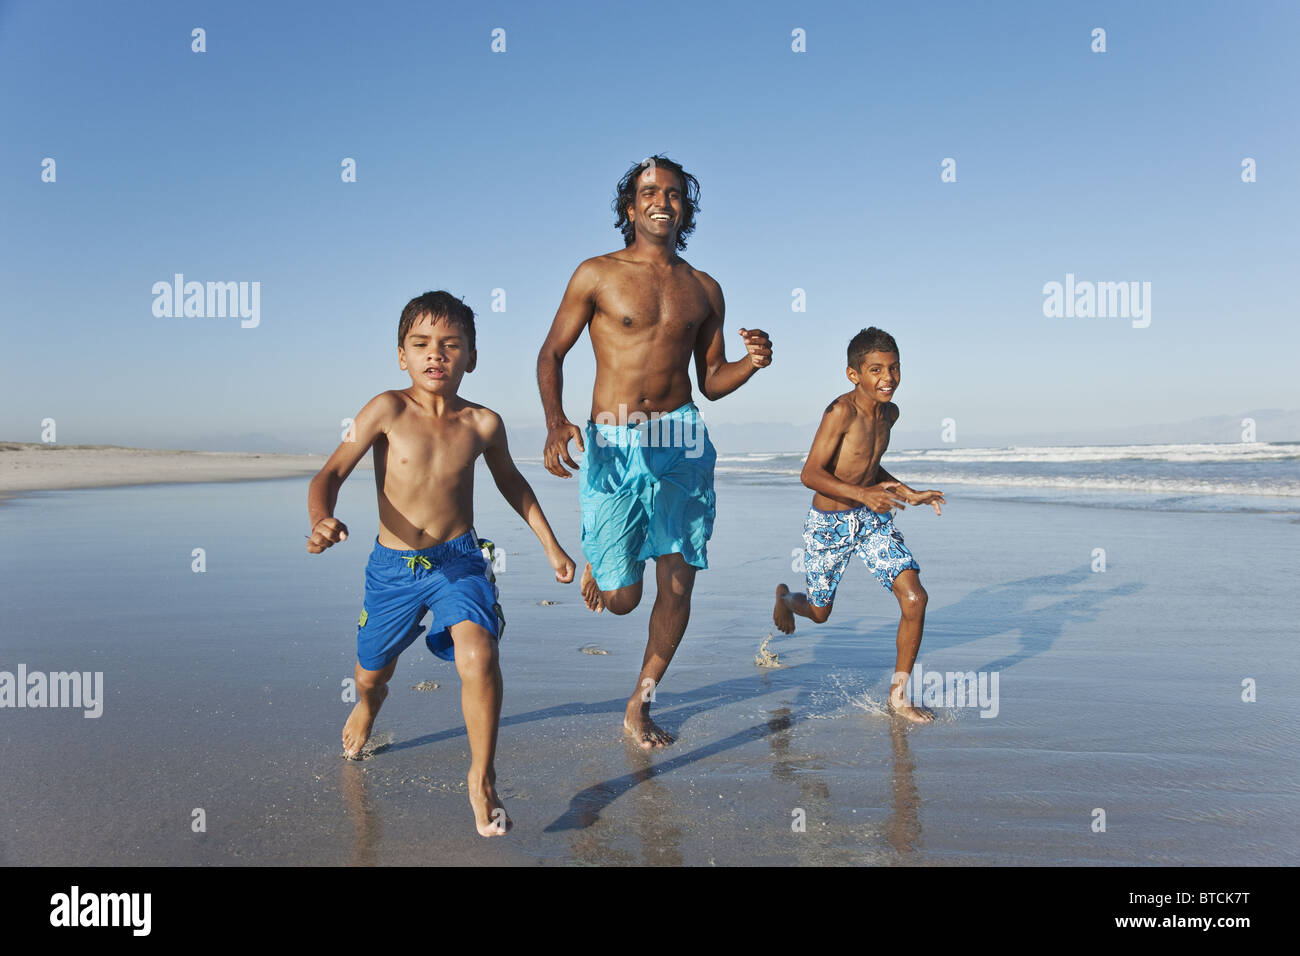 Young Indian man and boy's running along waters edge. - Stock Image